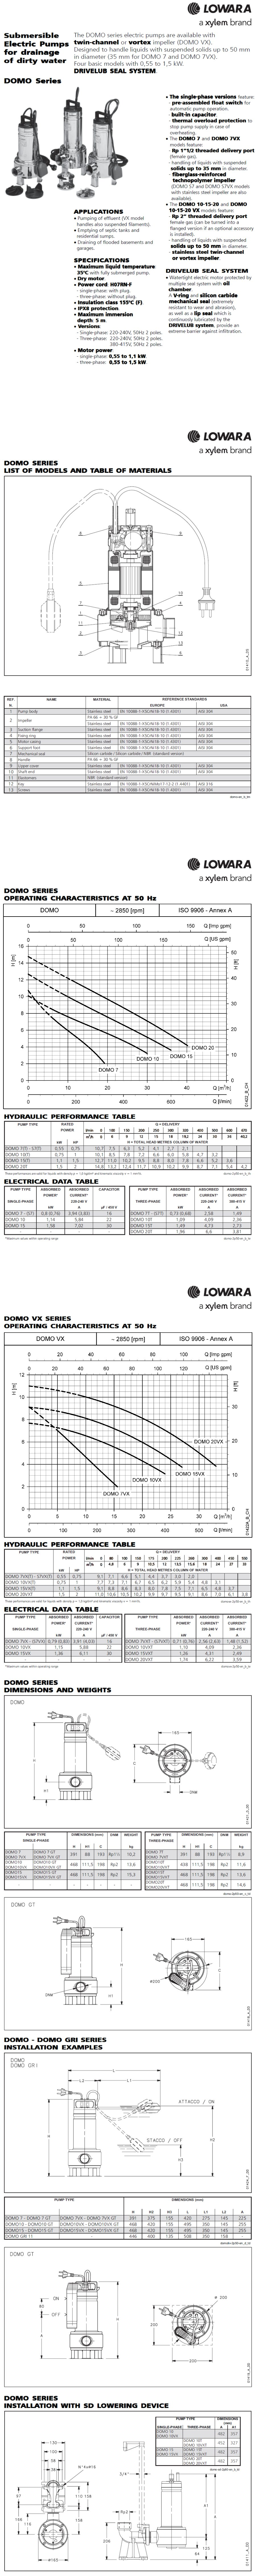 Data sheet Lowara DOMO10VX